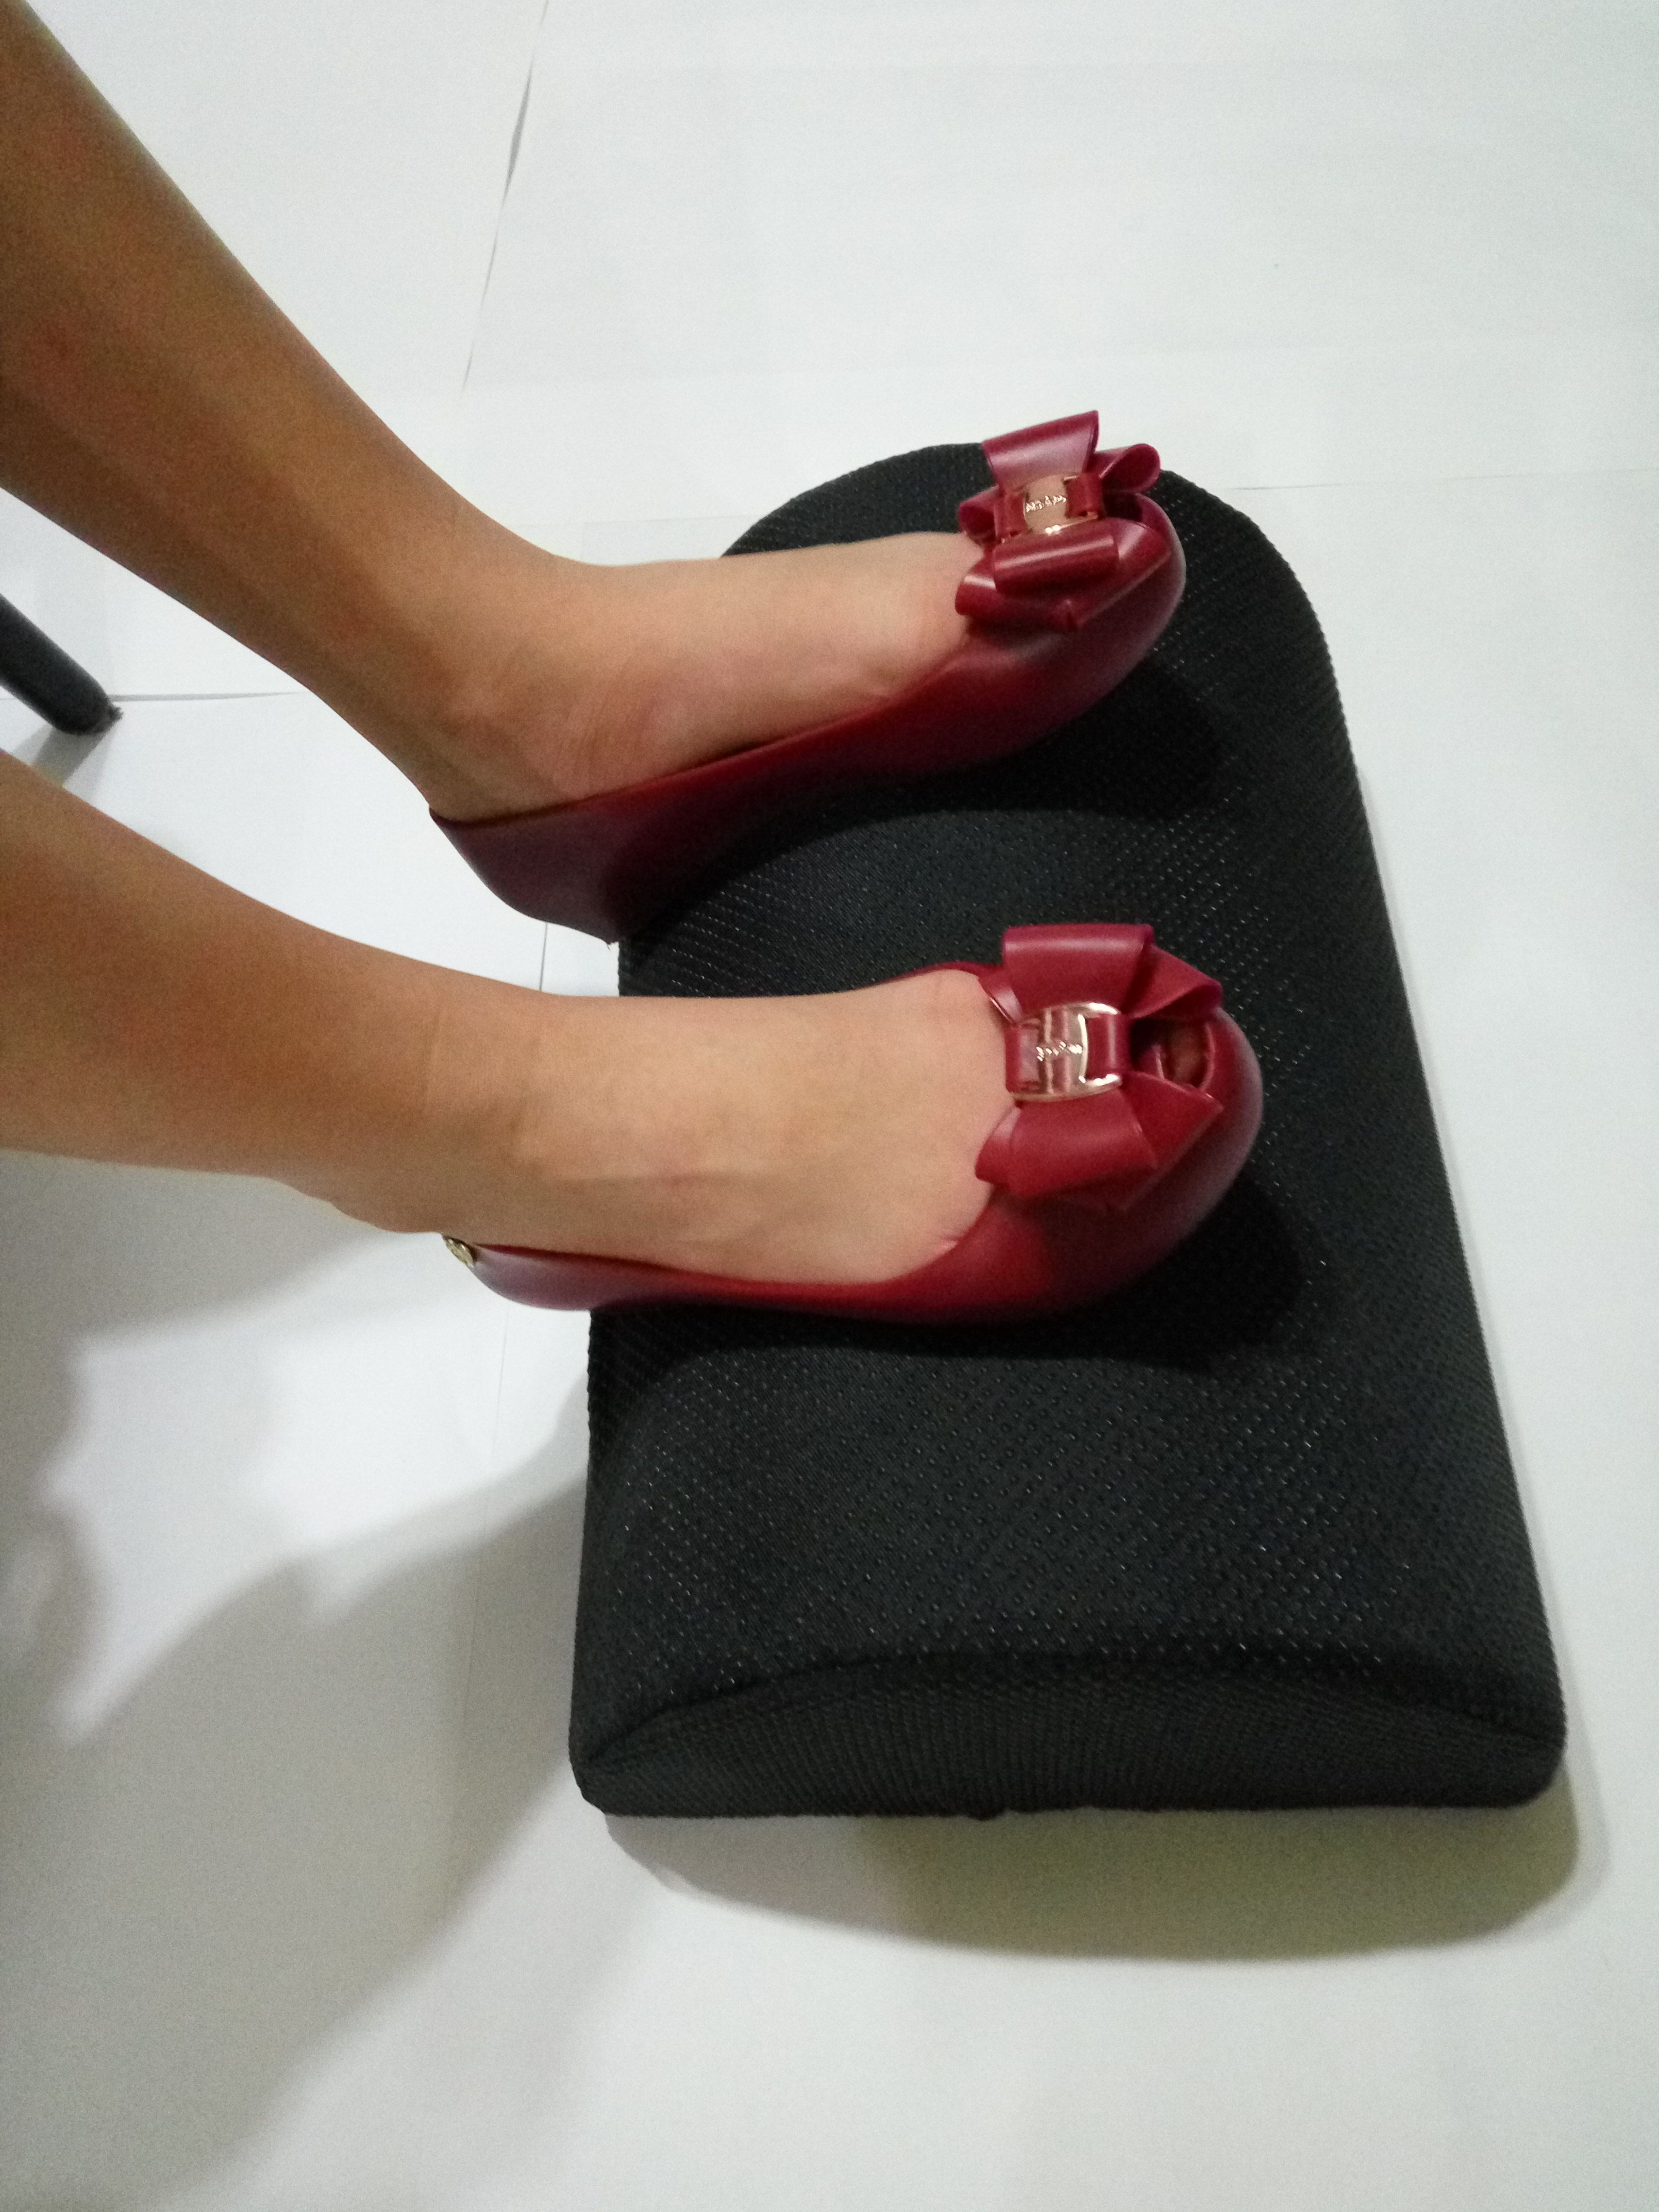 Foot Rest Cushion To Relieve Knee Pain Tired Aching Sore Feet